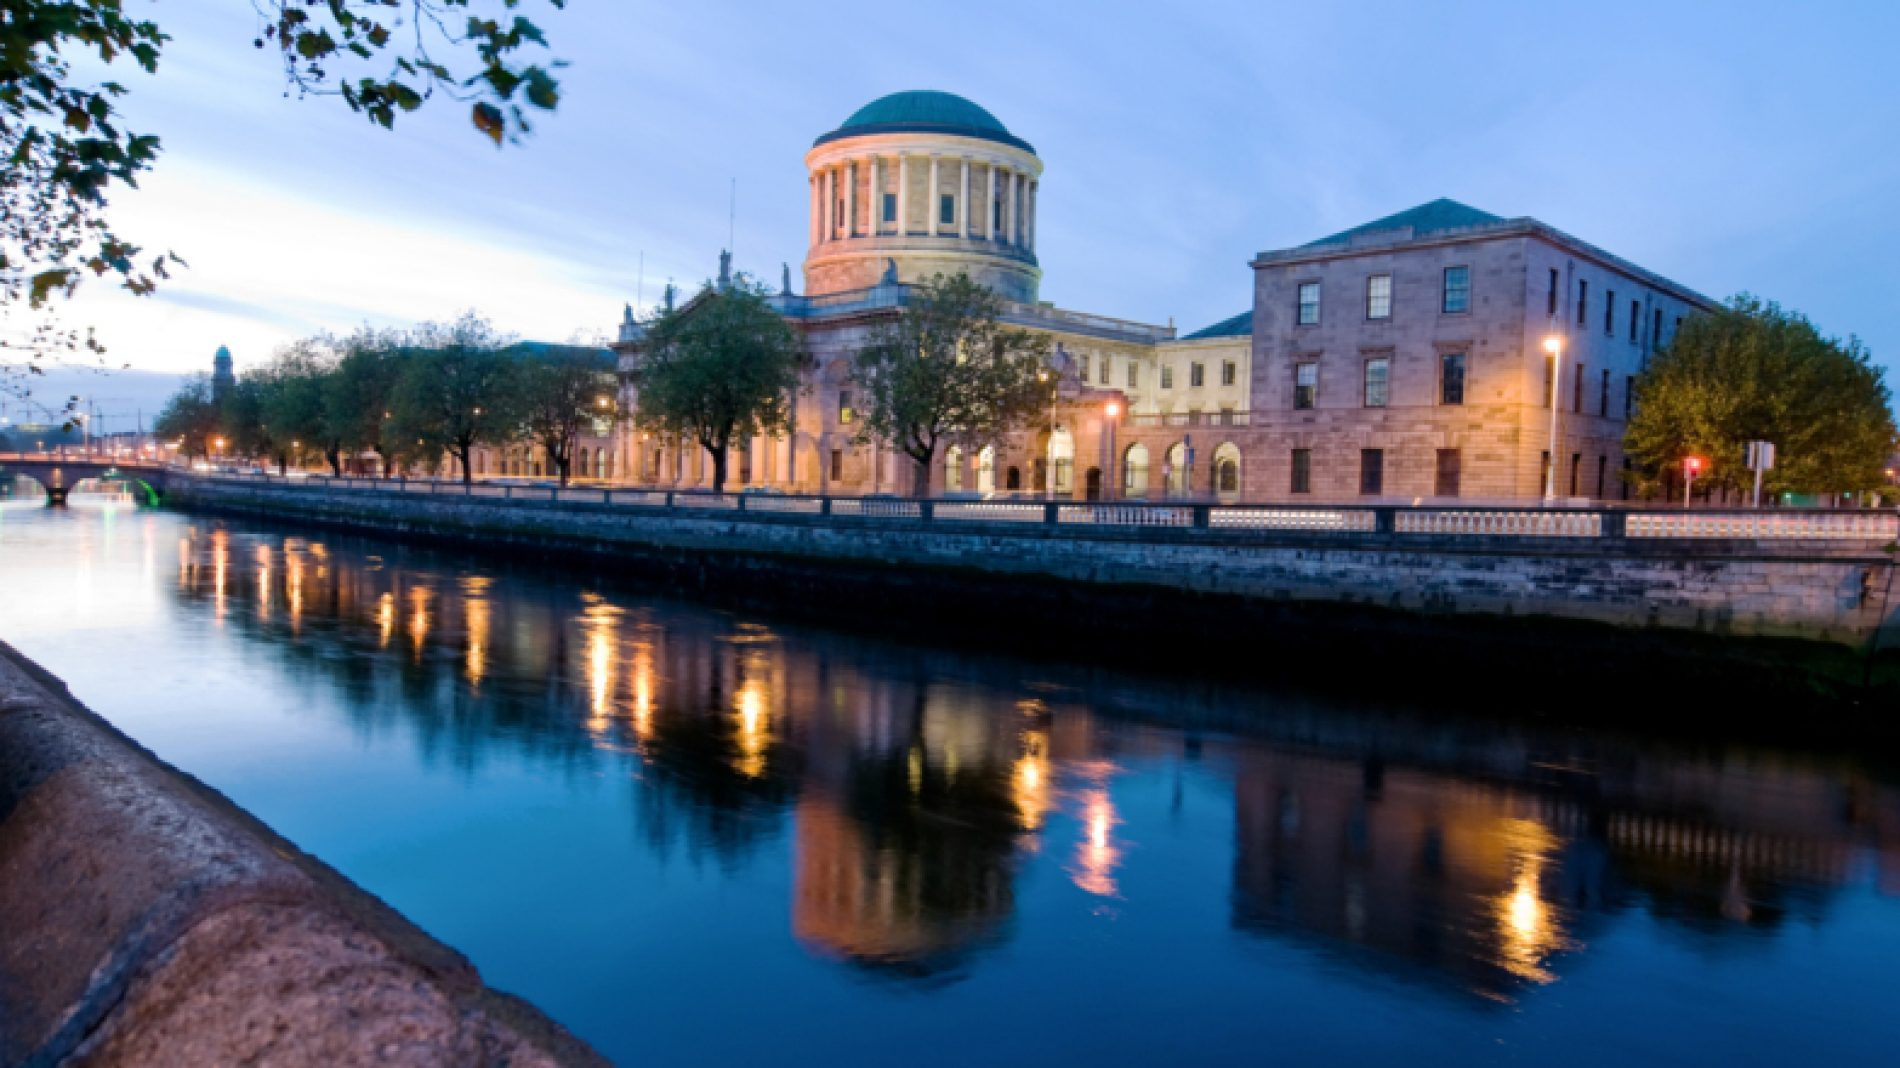 View-of-the-Four-Courts-Sb7VOa